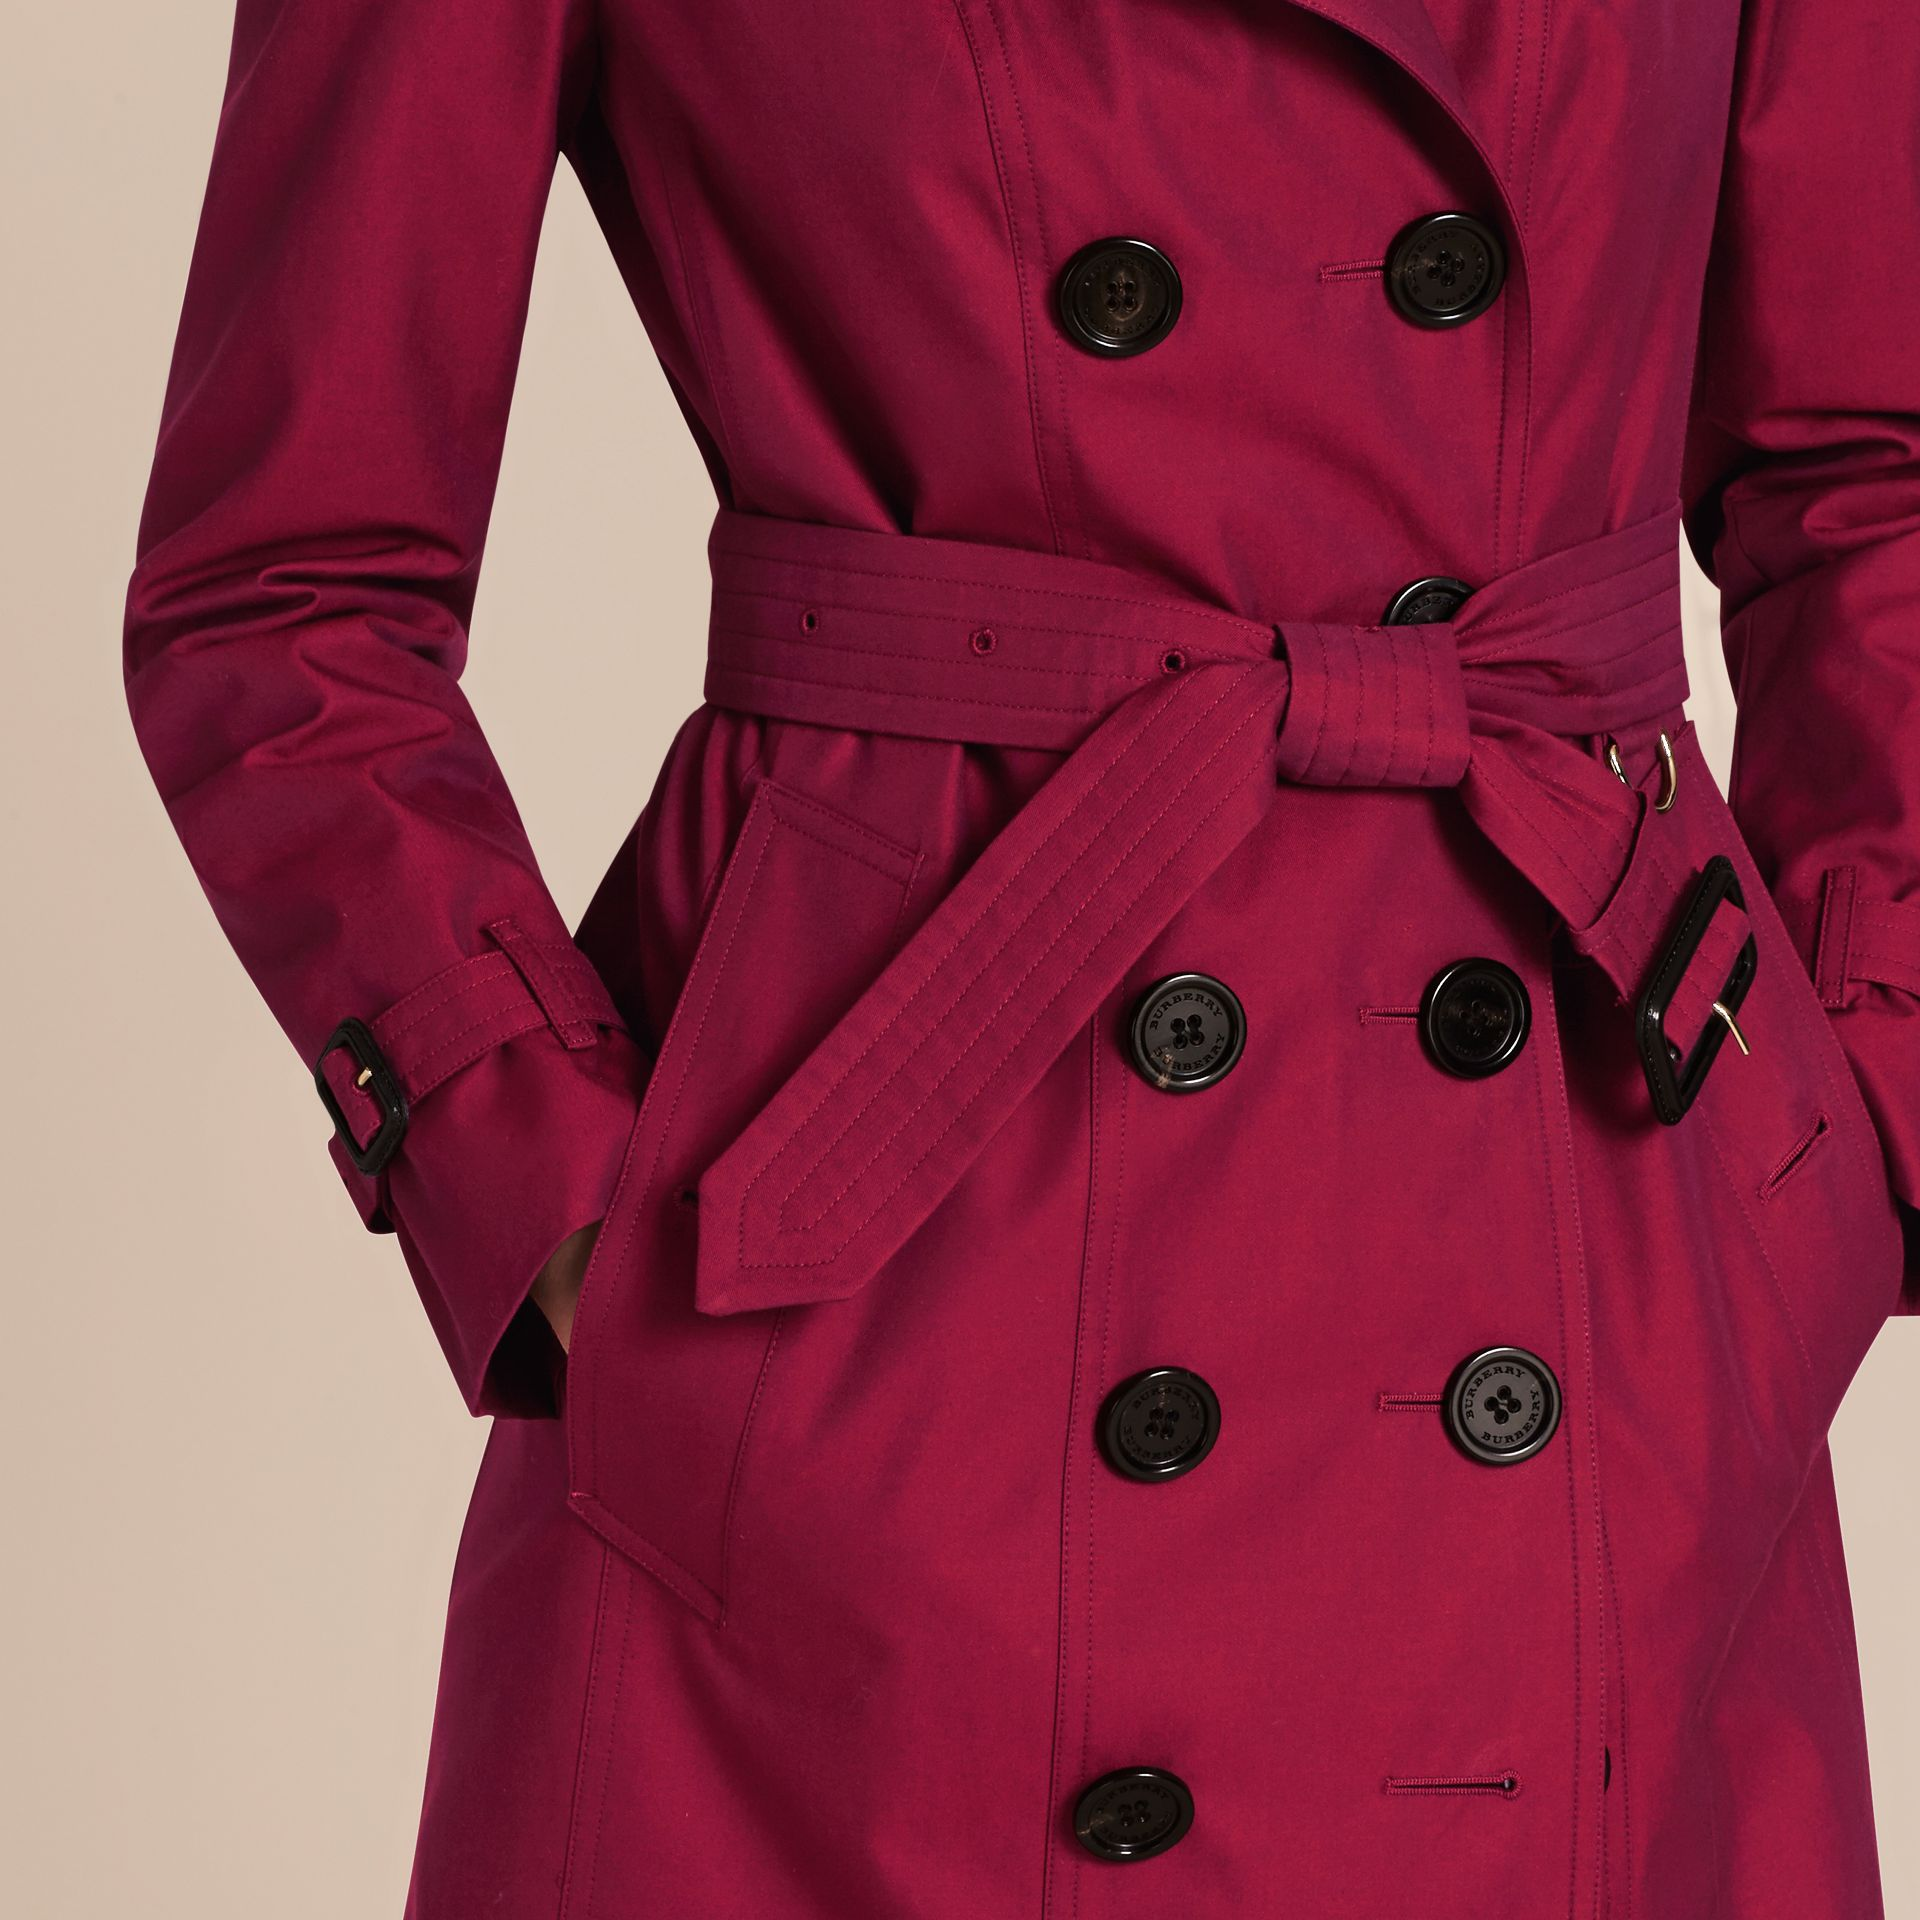 Crimson Trench-coat en gabardine de coton avec bordure en fourrure amovible Crimson - photo de la galerie 5